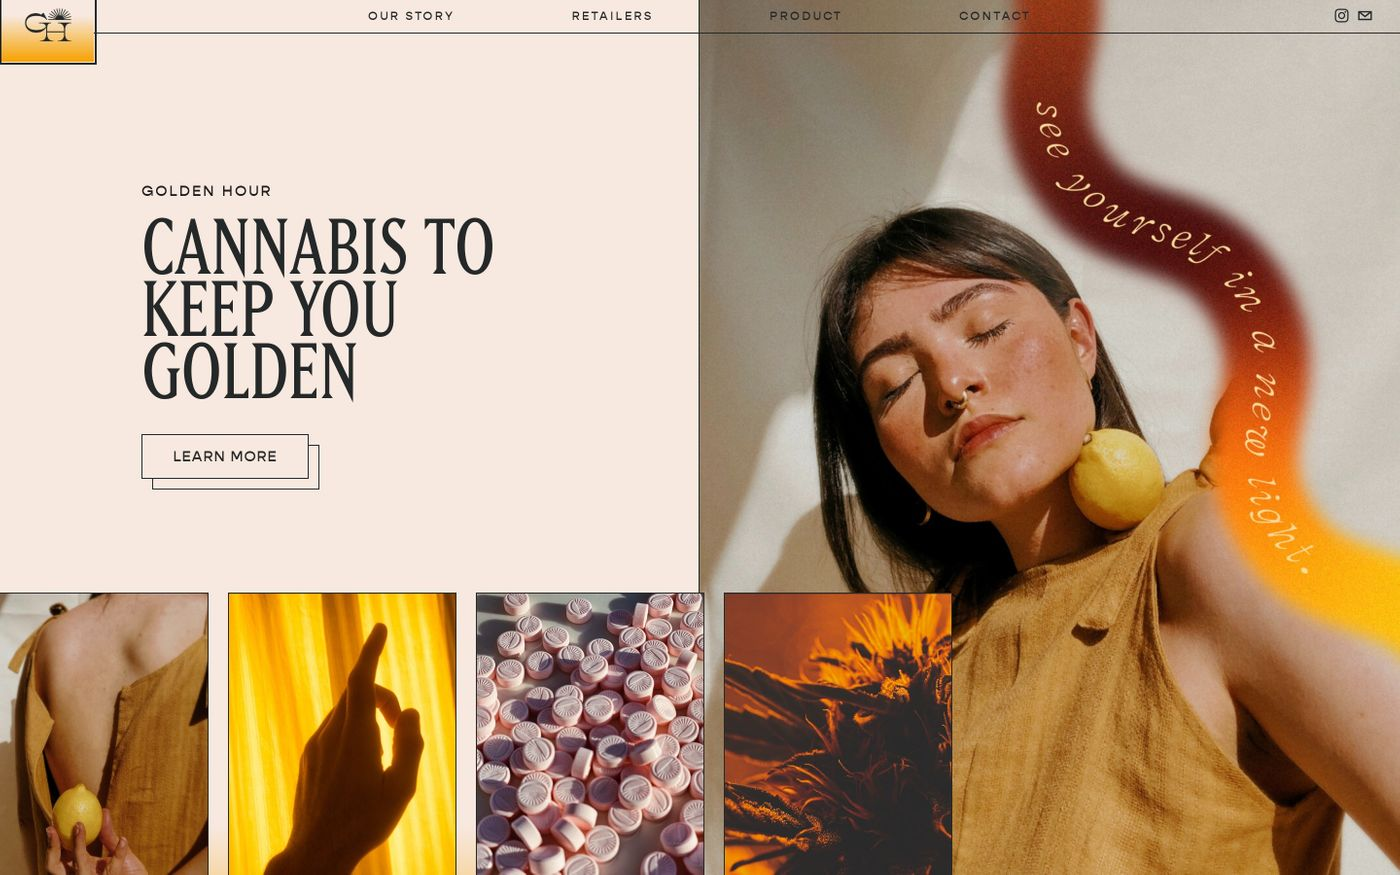 Screenshot of Golden hour website